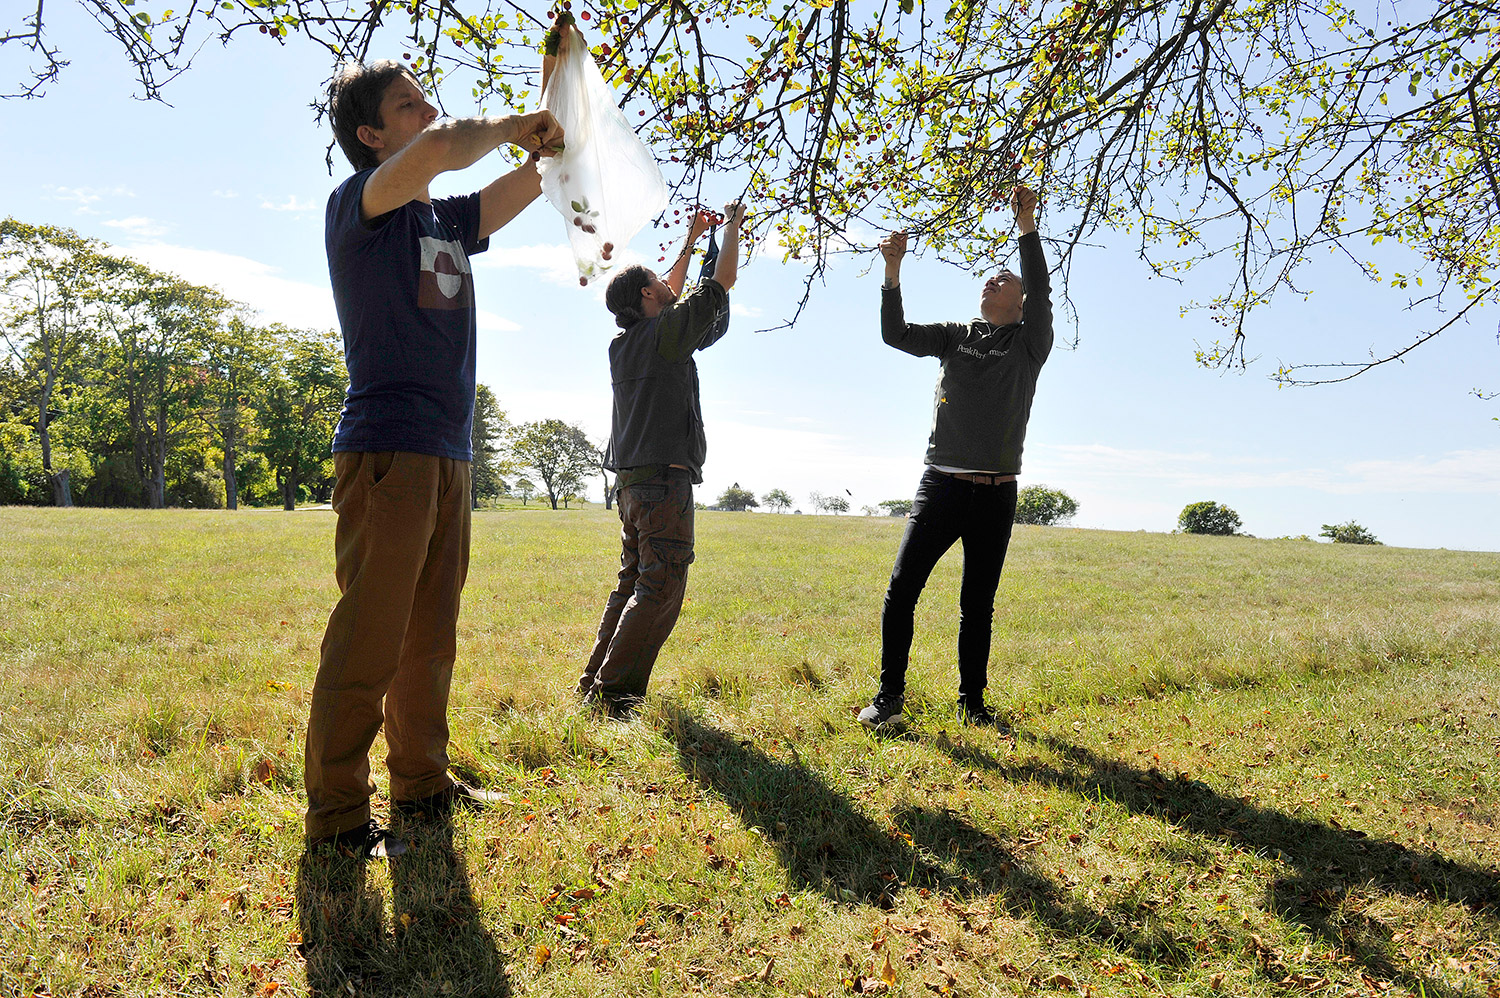 Vinland owner David Levi, left, joins Conor Quinn and Inu Heglund to pick crab apples during a foraging trip Monday morning in Portland.